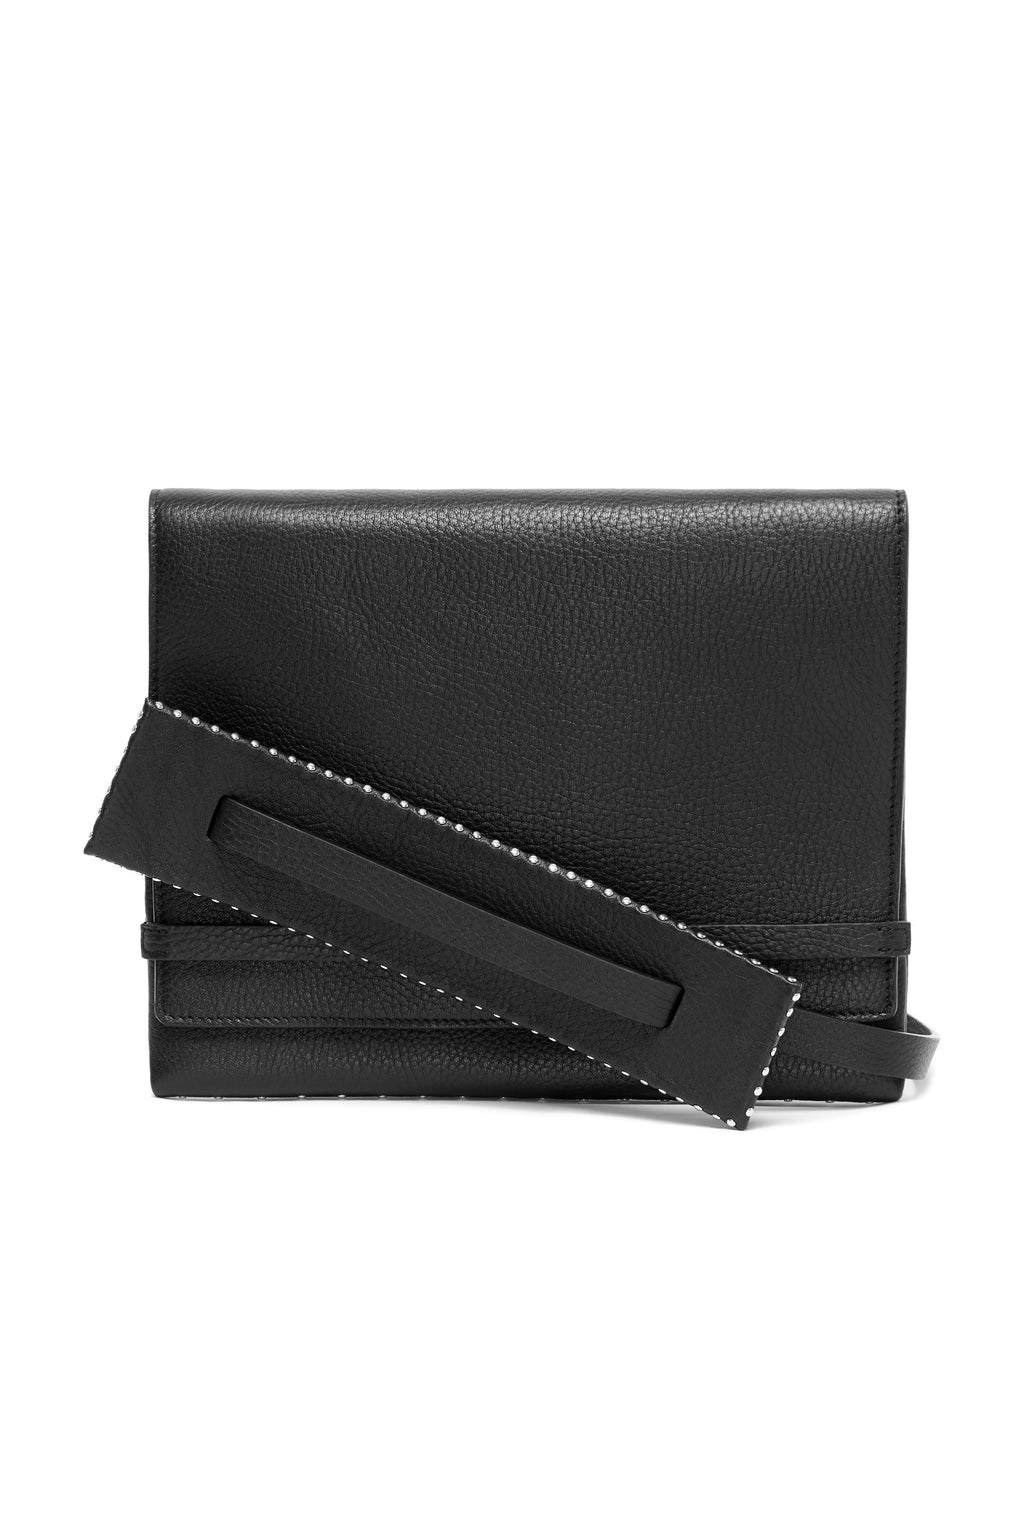 Riot black leather bag with detachable shoulder strap